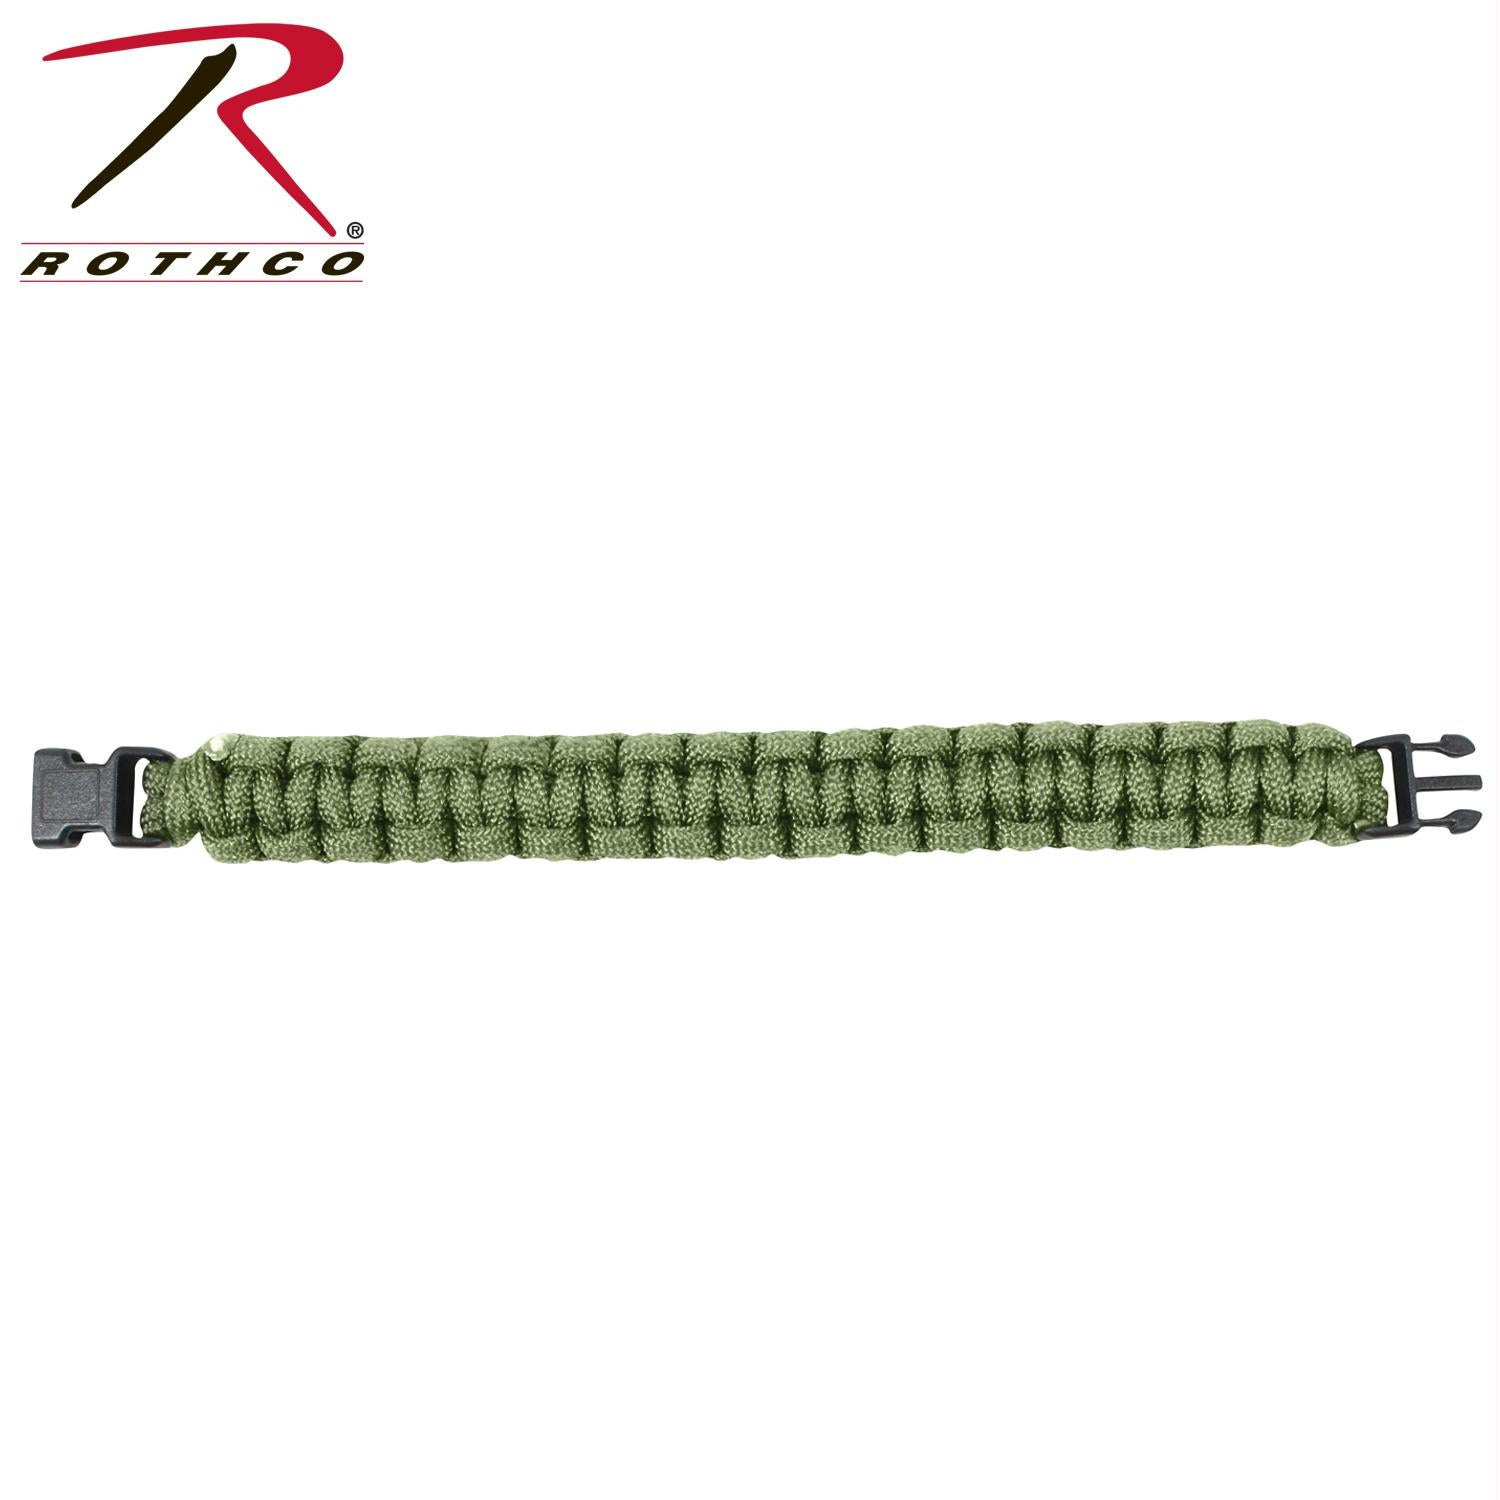 Rothco Solid Color Paracord Bracelet - Olive Drab / 10 Inches